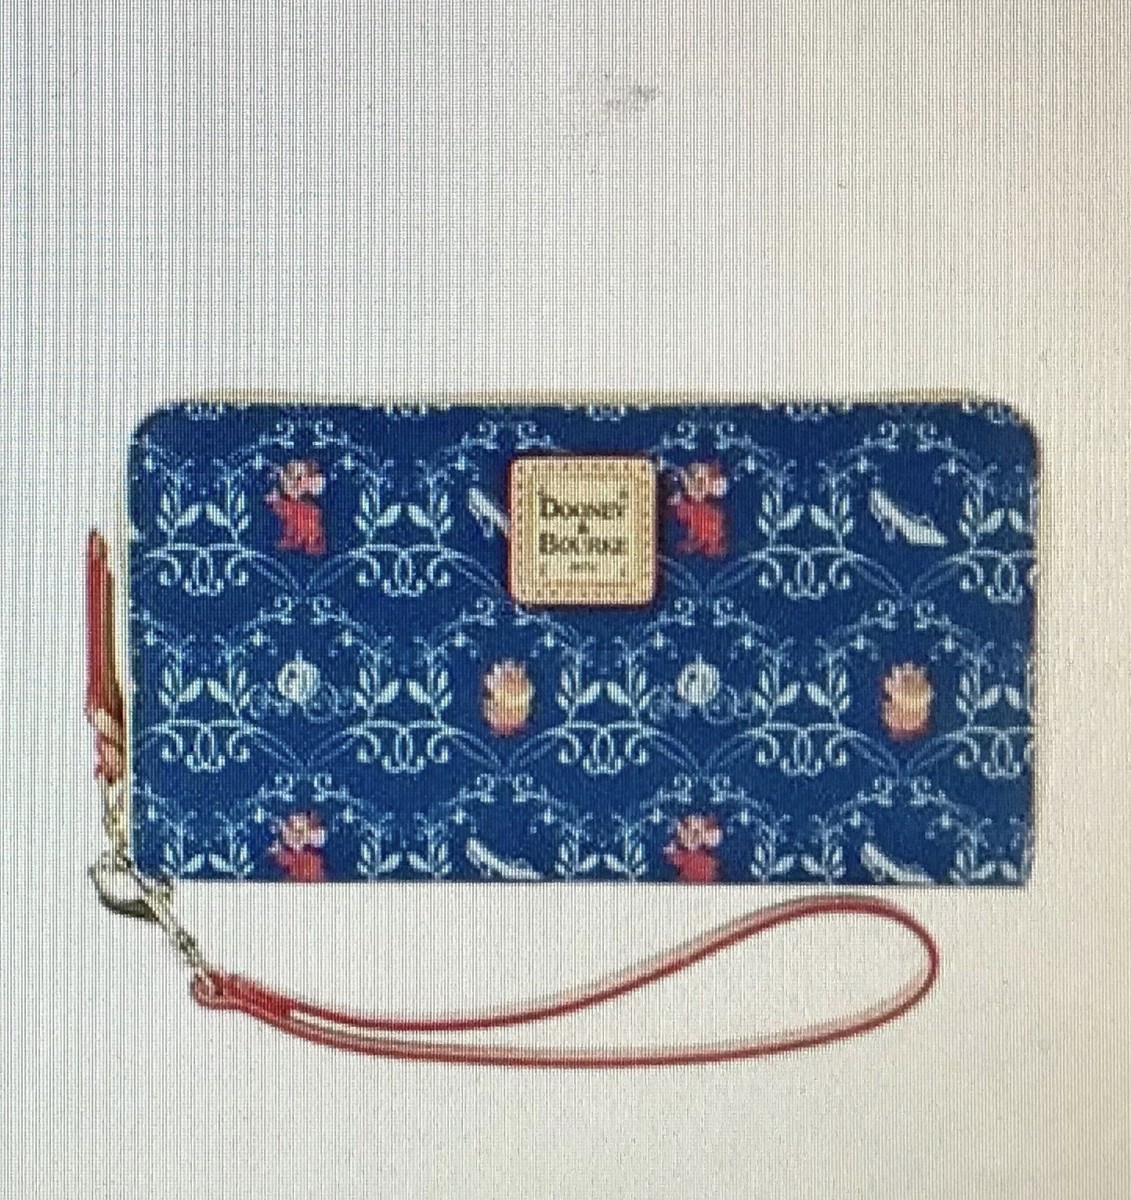 NEW Cinderella Dooney & Bourke Bags Coming to Disney Parks! Rainbow Headband Ears too! #disneystyle 4